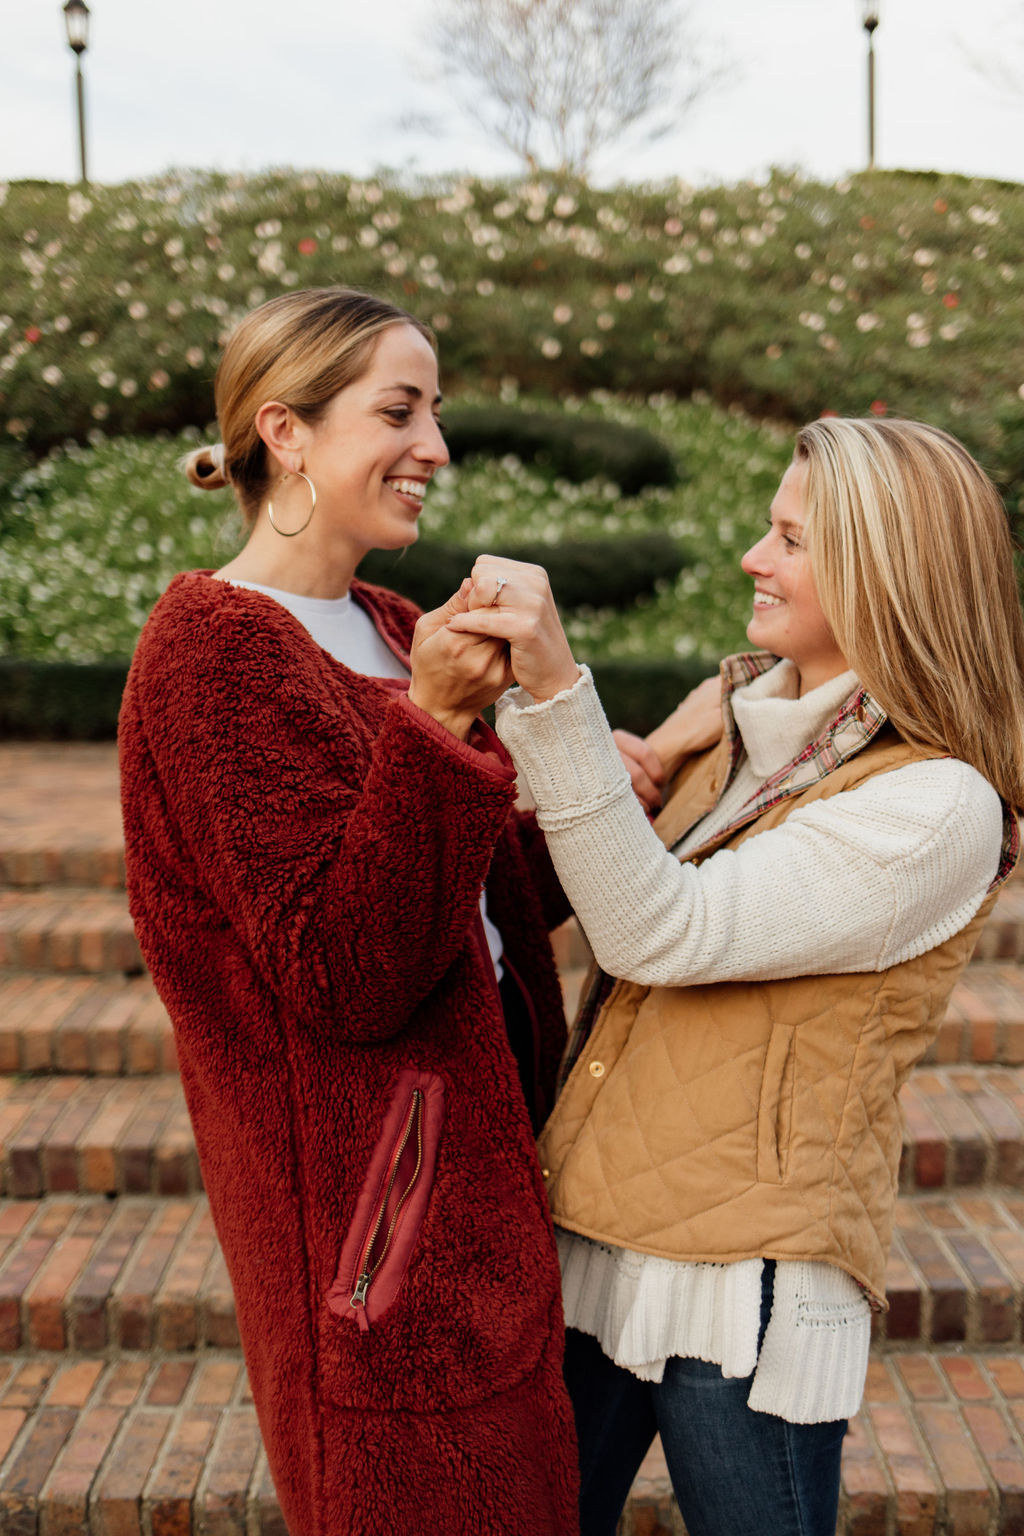 Nicole Rae Photography lesbian gay same-sex lgbt+ queer proposal engagement Virginia USA Emily Chelsea Jewelry Dancing With Her (1)